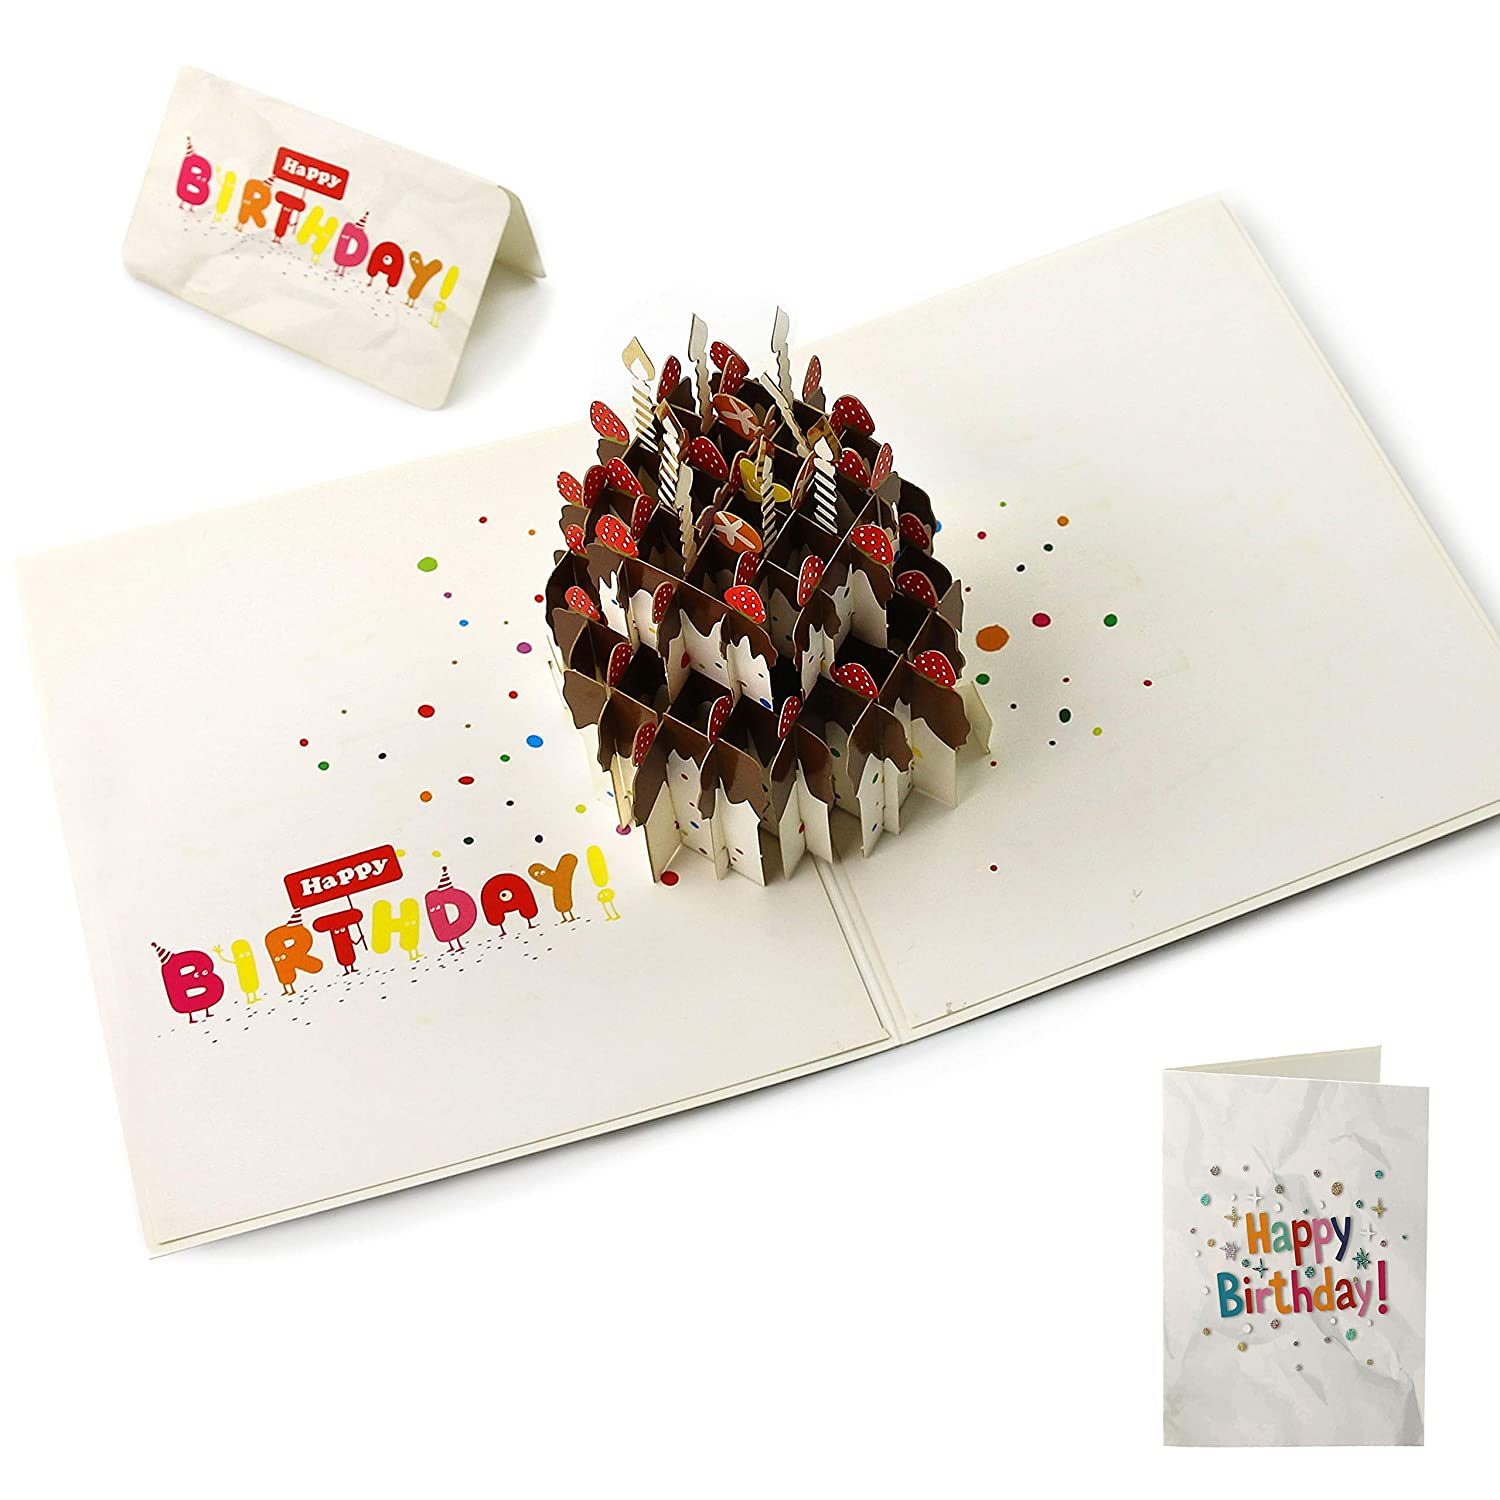 Amazon Athoinsu Happy Birthday Greeting Card 2 Layer Cake Pop Up With Envelope Best Gift For Everyone Office Products